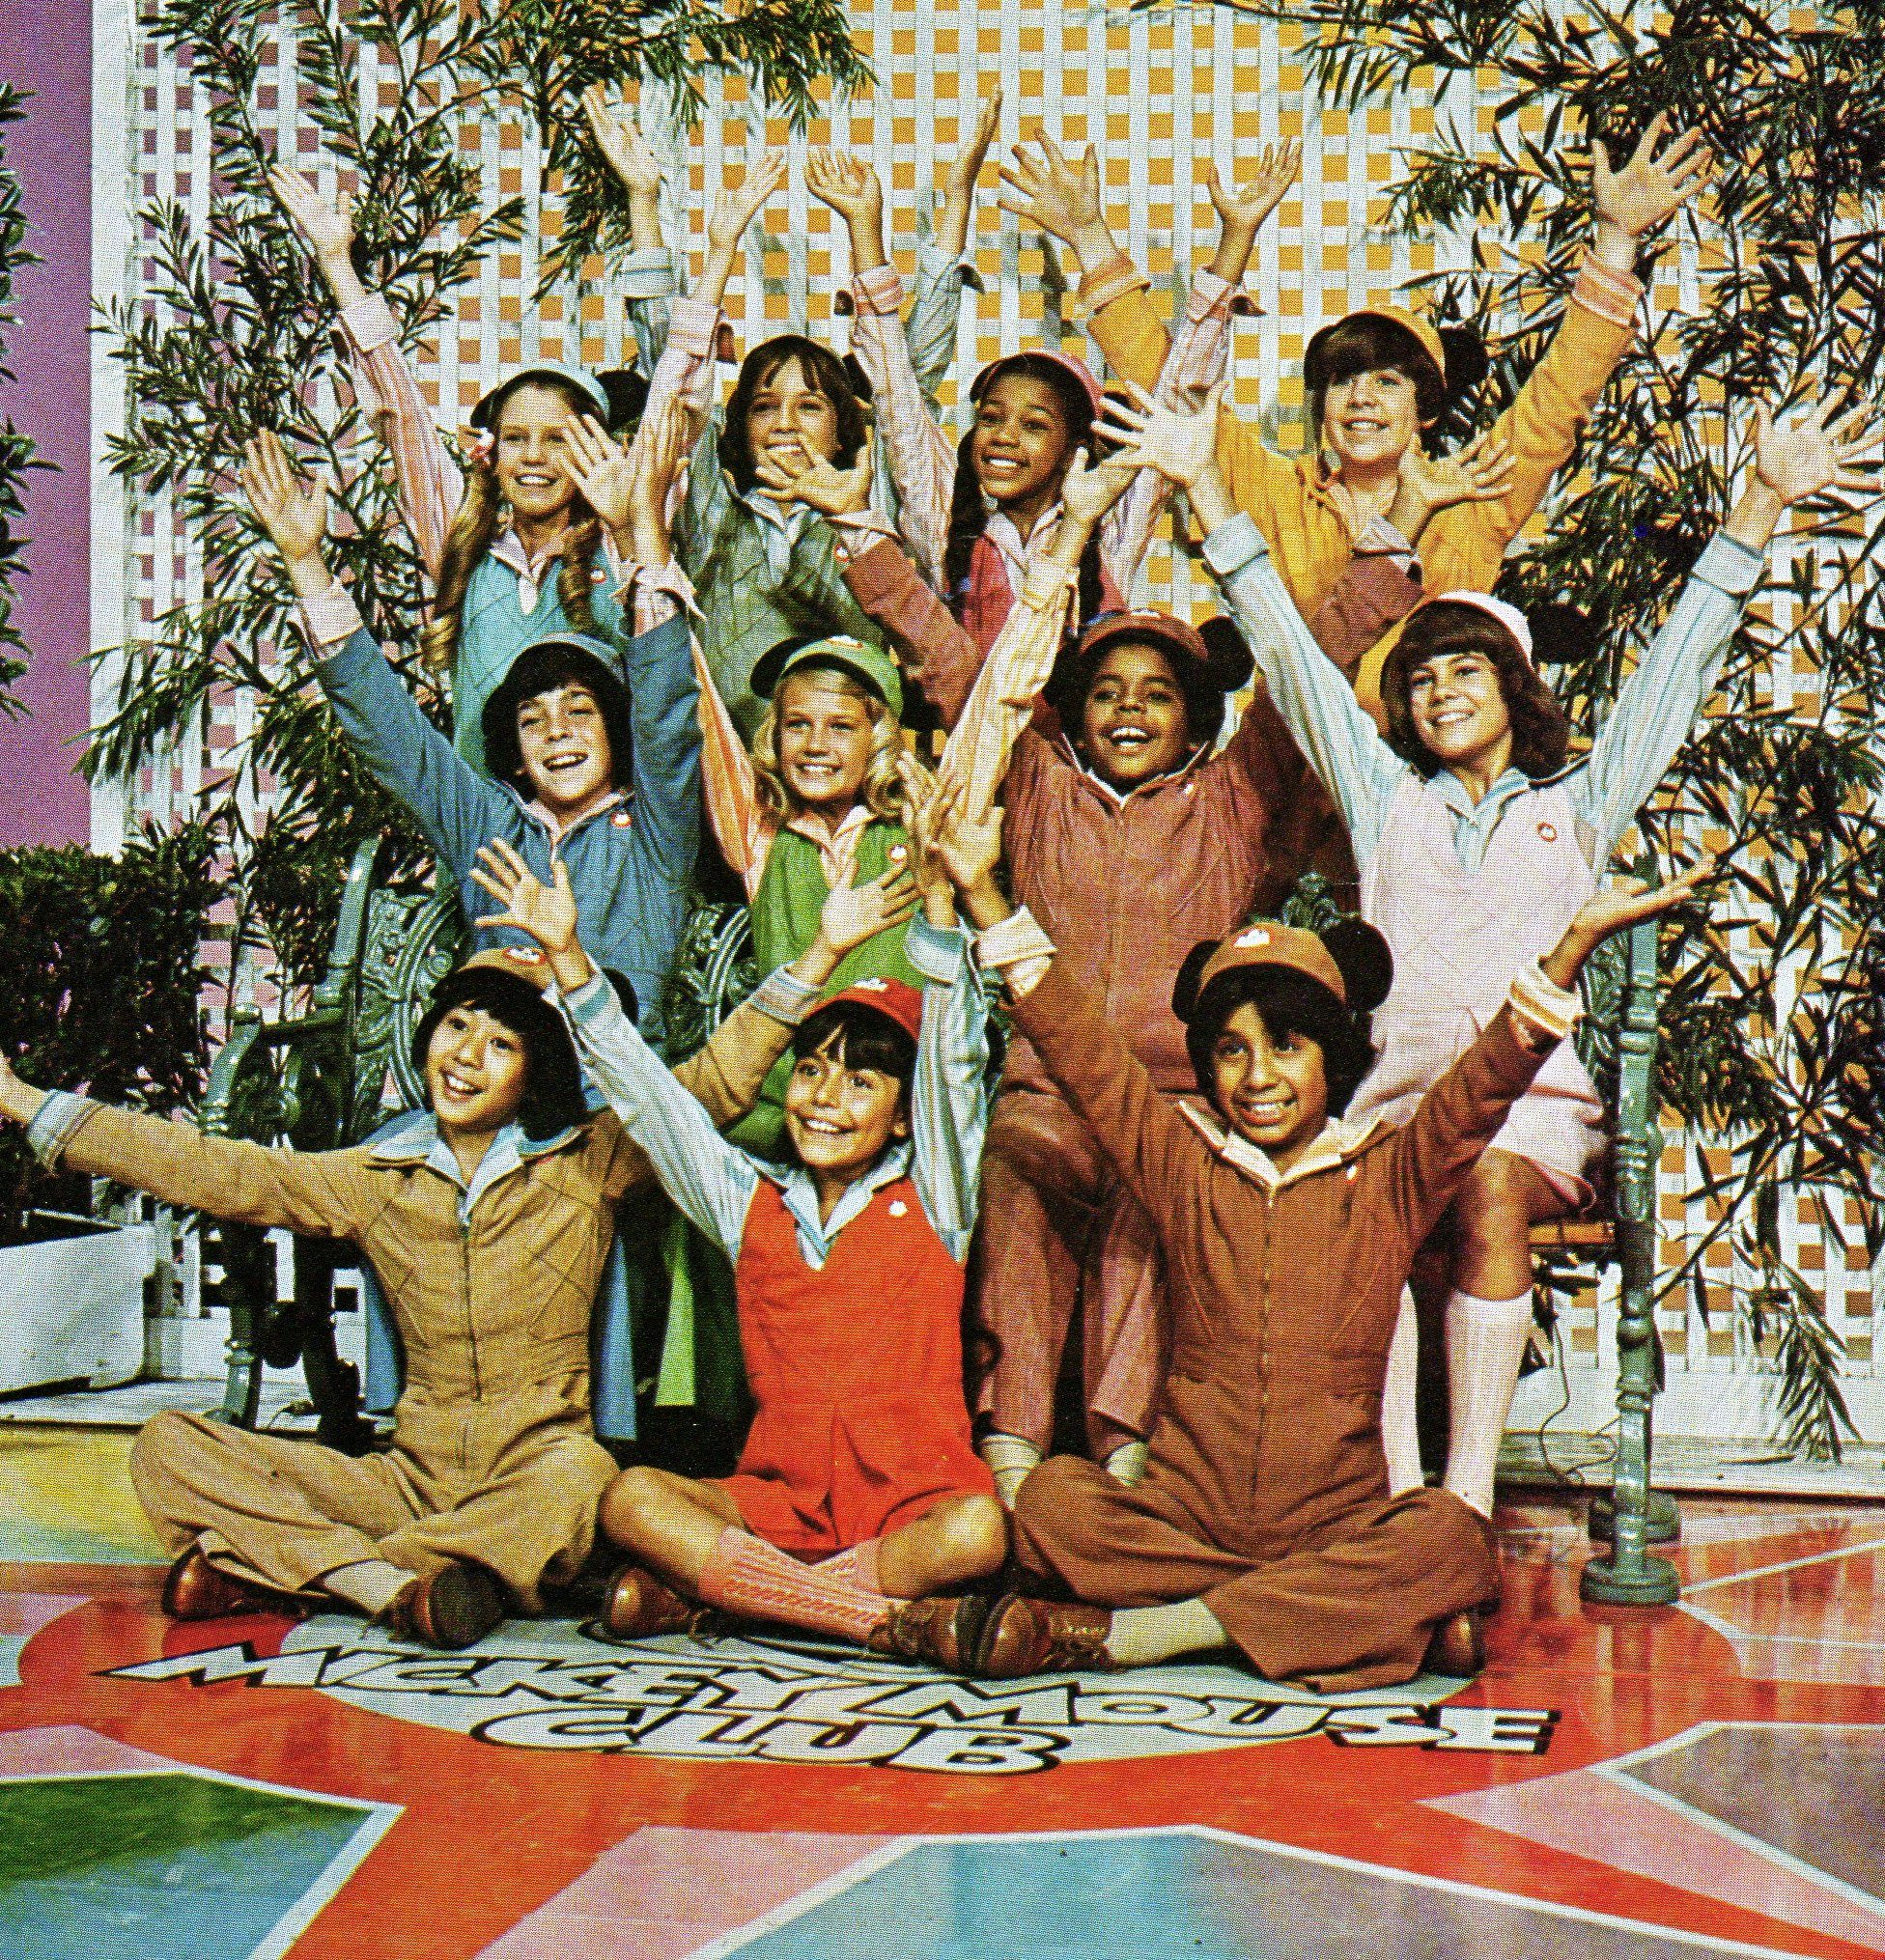 New Mickey Mouse Club 70's. (this photo is missing